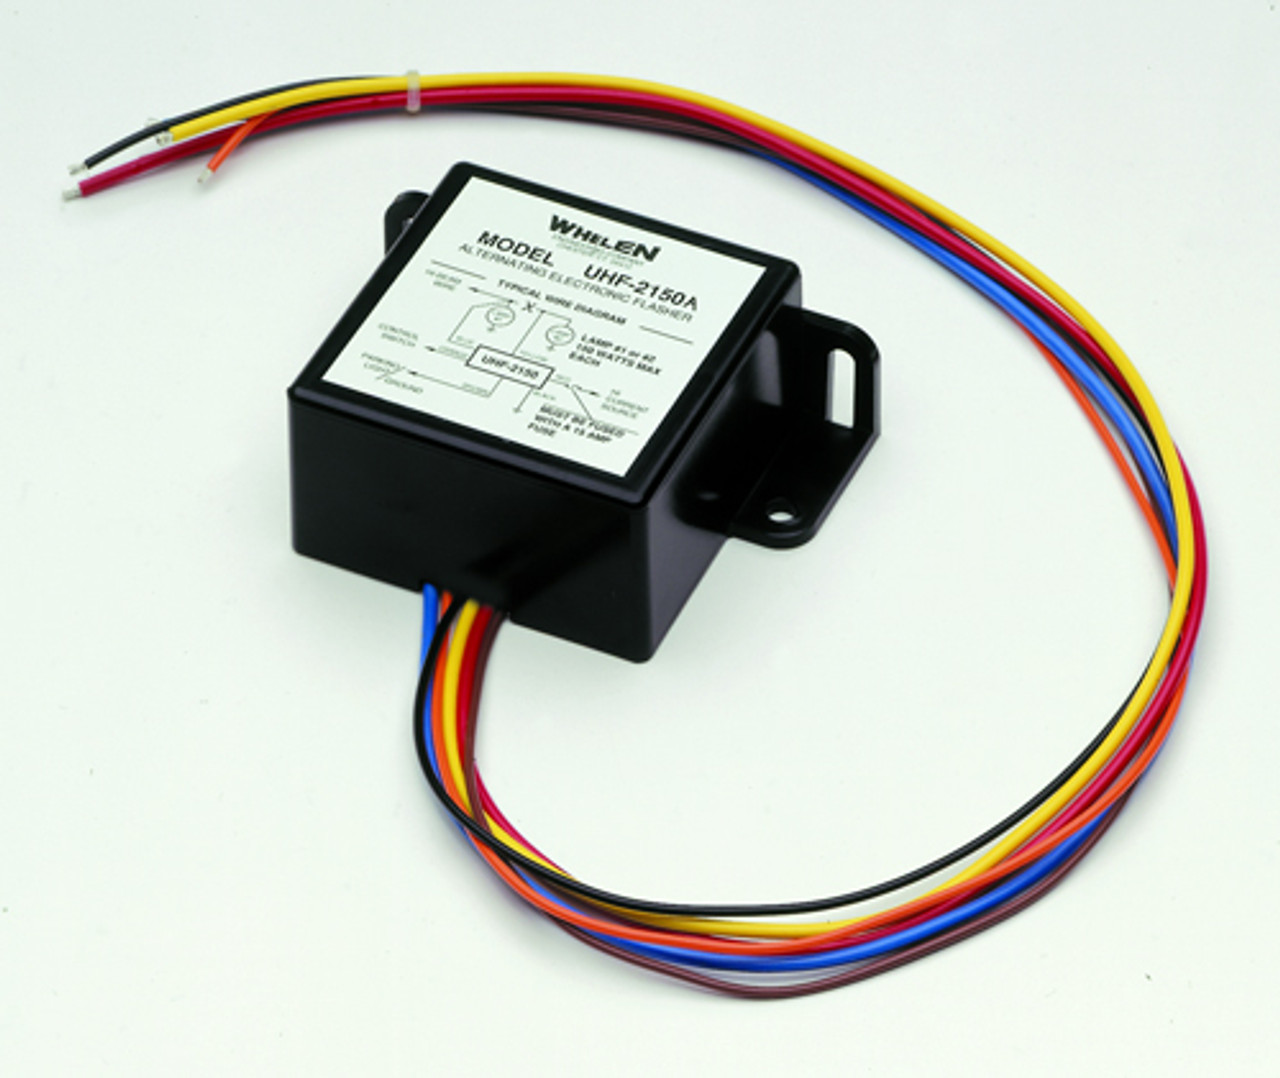 hight resolution of universal headlight flasher by whelen uhf2150a